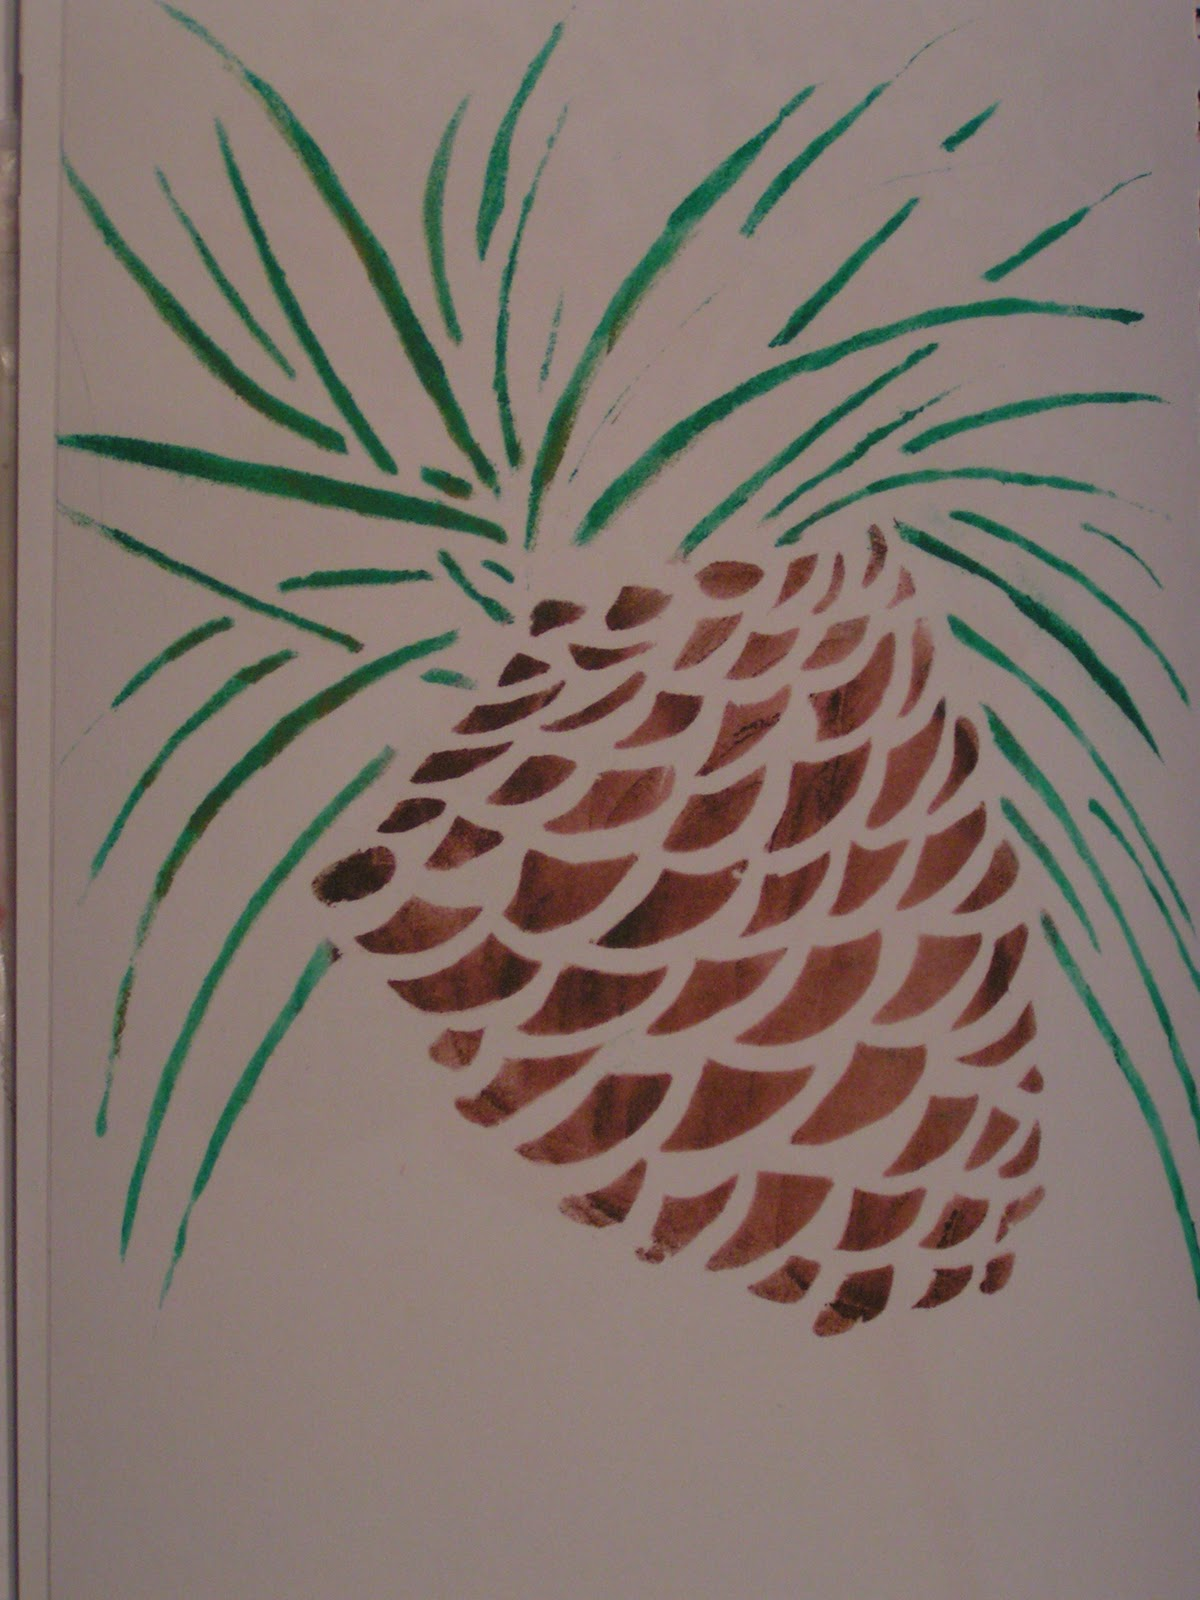 Pine Tree Stencil I did get the stencil i had